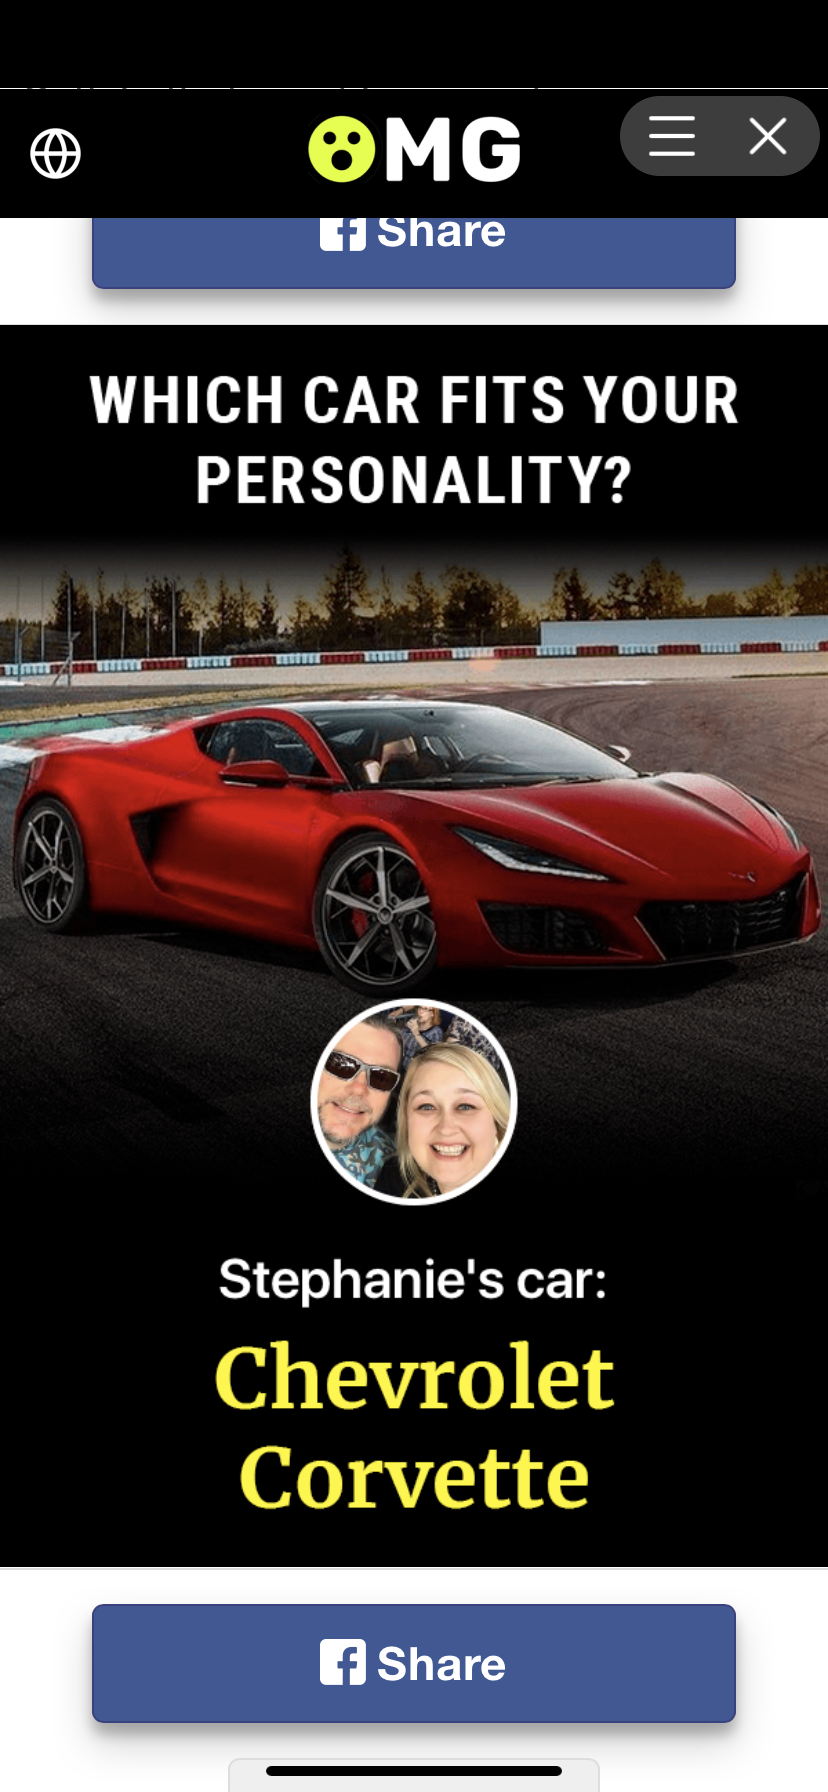 Pin By Stephanie Swindell On Fun Quizzes In 2020 Fun Quizzes Chevrolet Corvette Fun